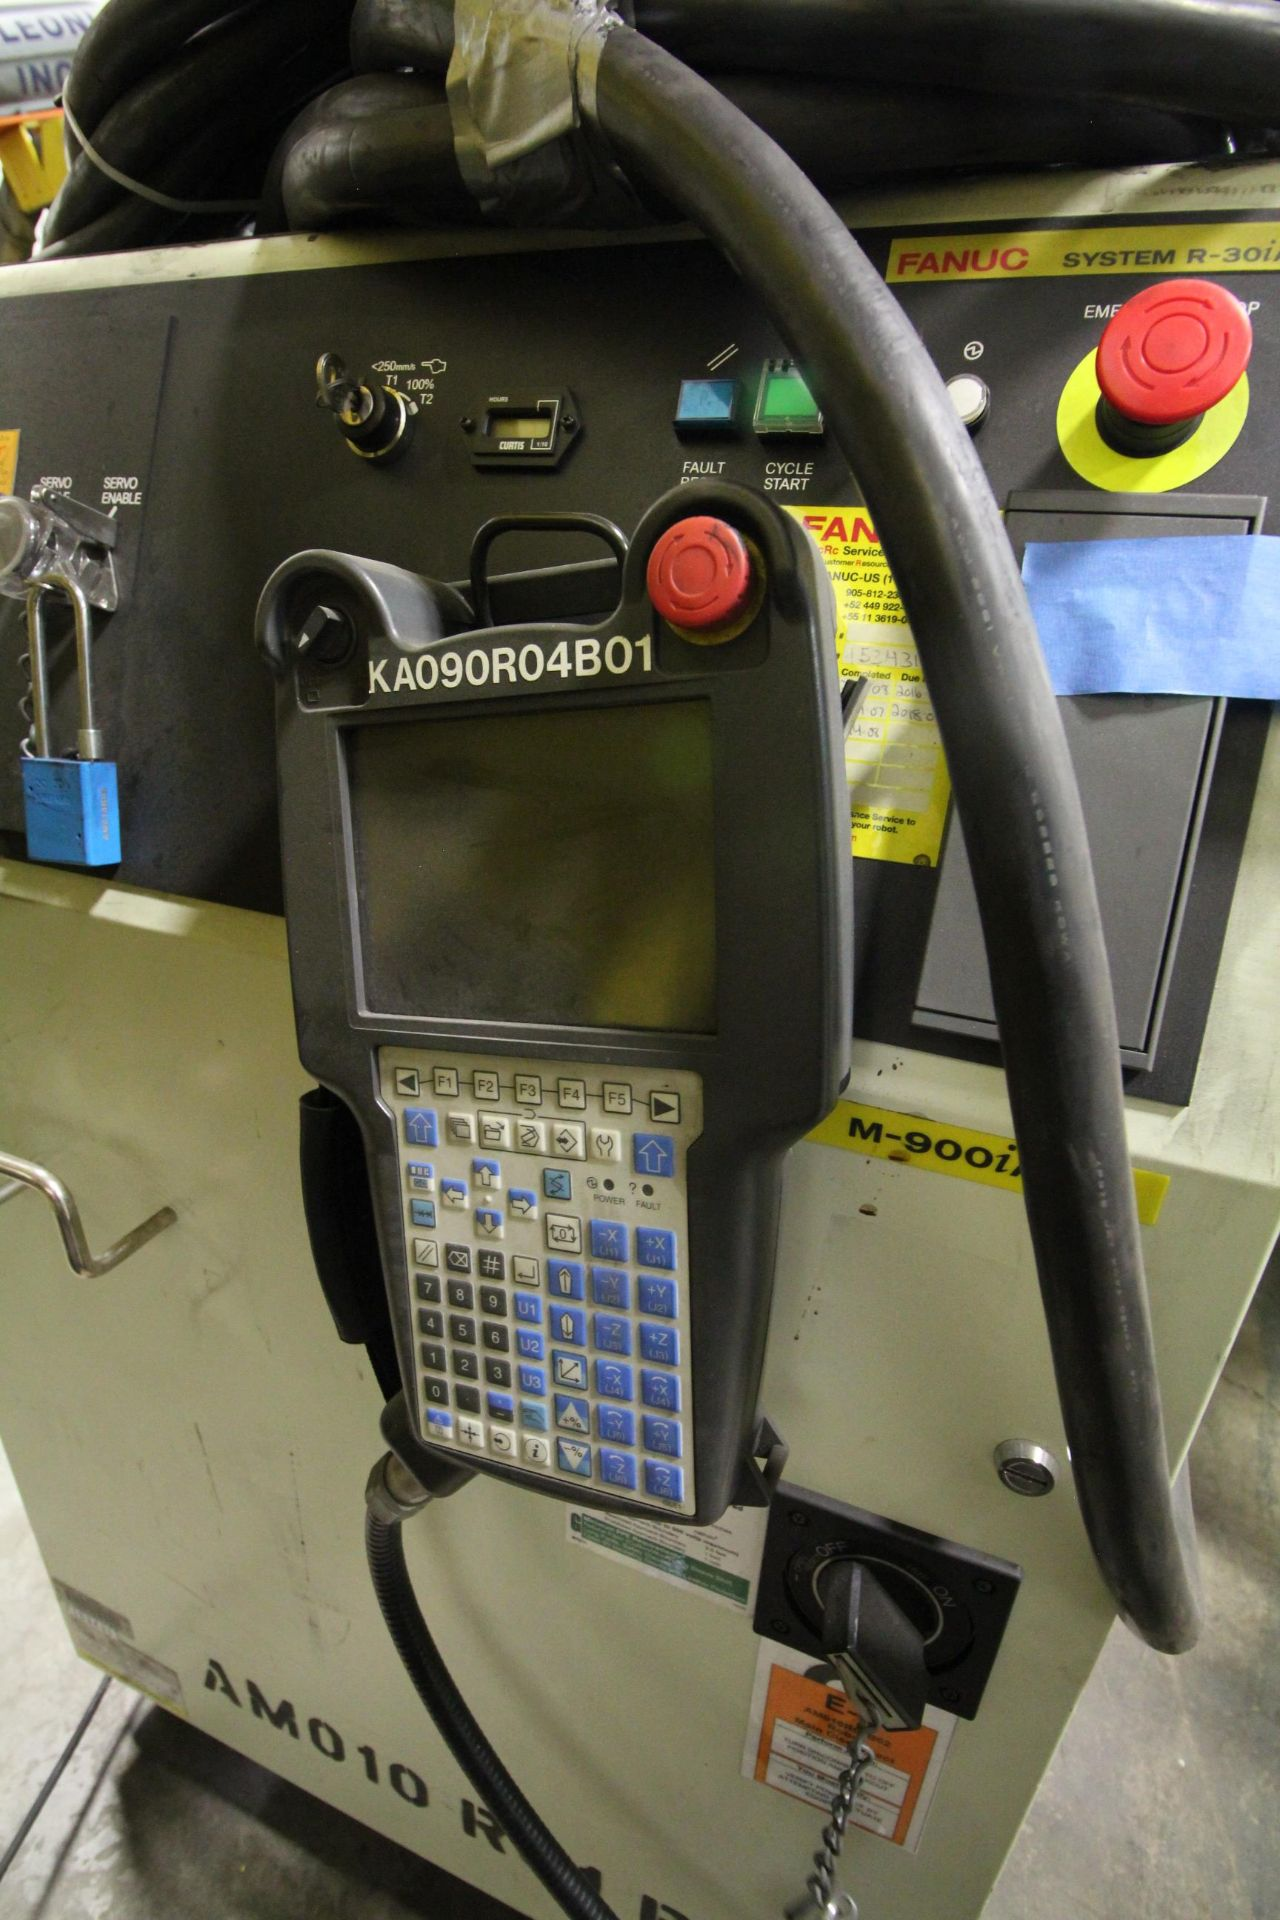 FANUC ROBOT M-900iA/400L WITH R-30iA CONTROLLER, TEACHPENDANT AND CABLES, SN 153431, YEAR 2014 - Image 6 of 11